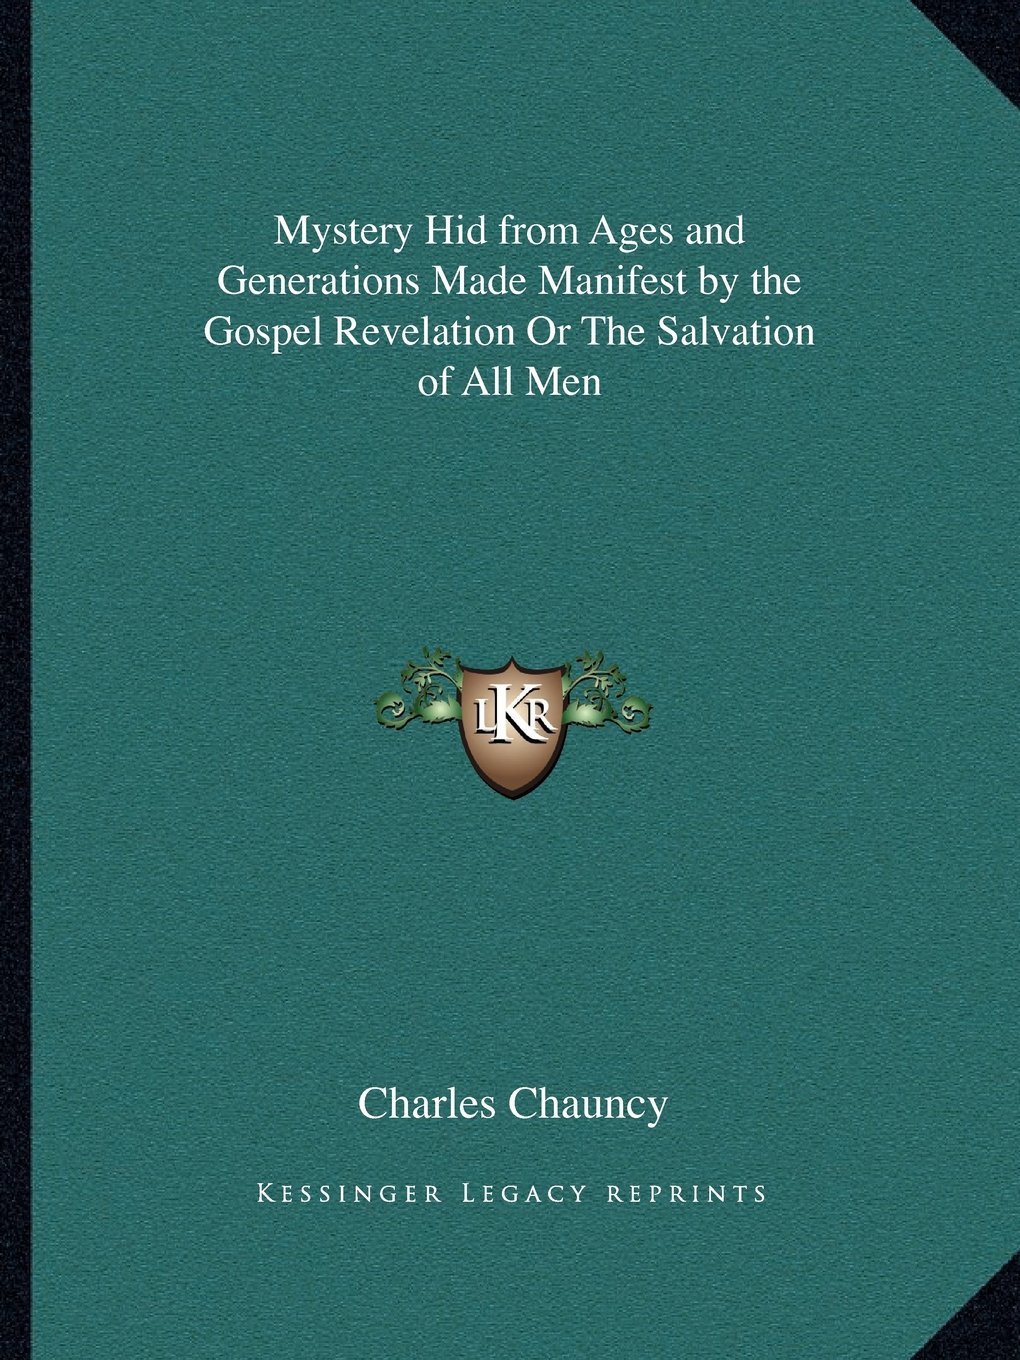 Mystery Hid from Ages and Generations Made Manifest by the Gospel Revelation Or The Salvation of All Men pdf